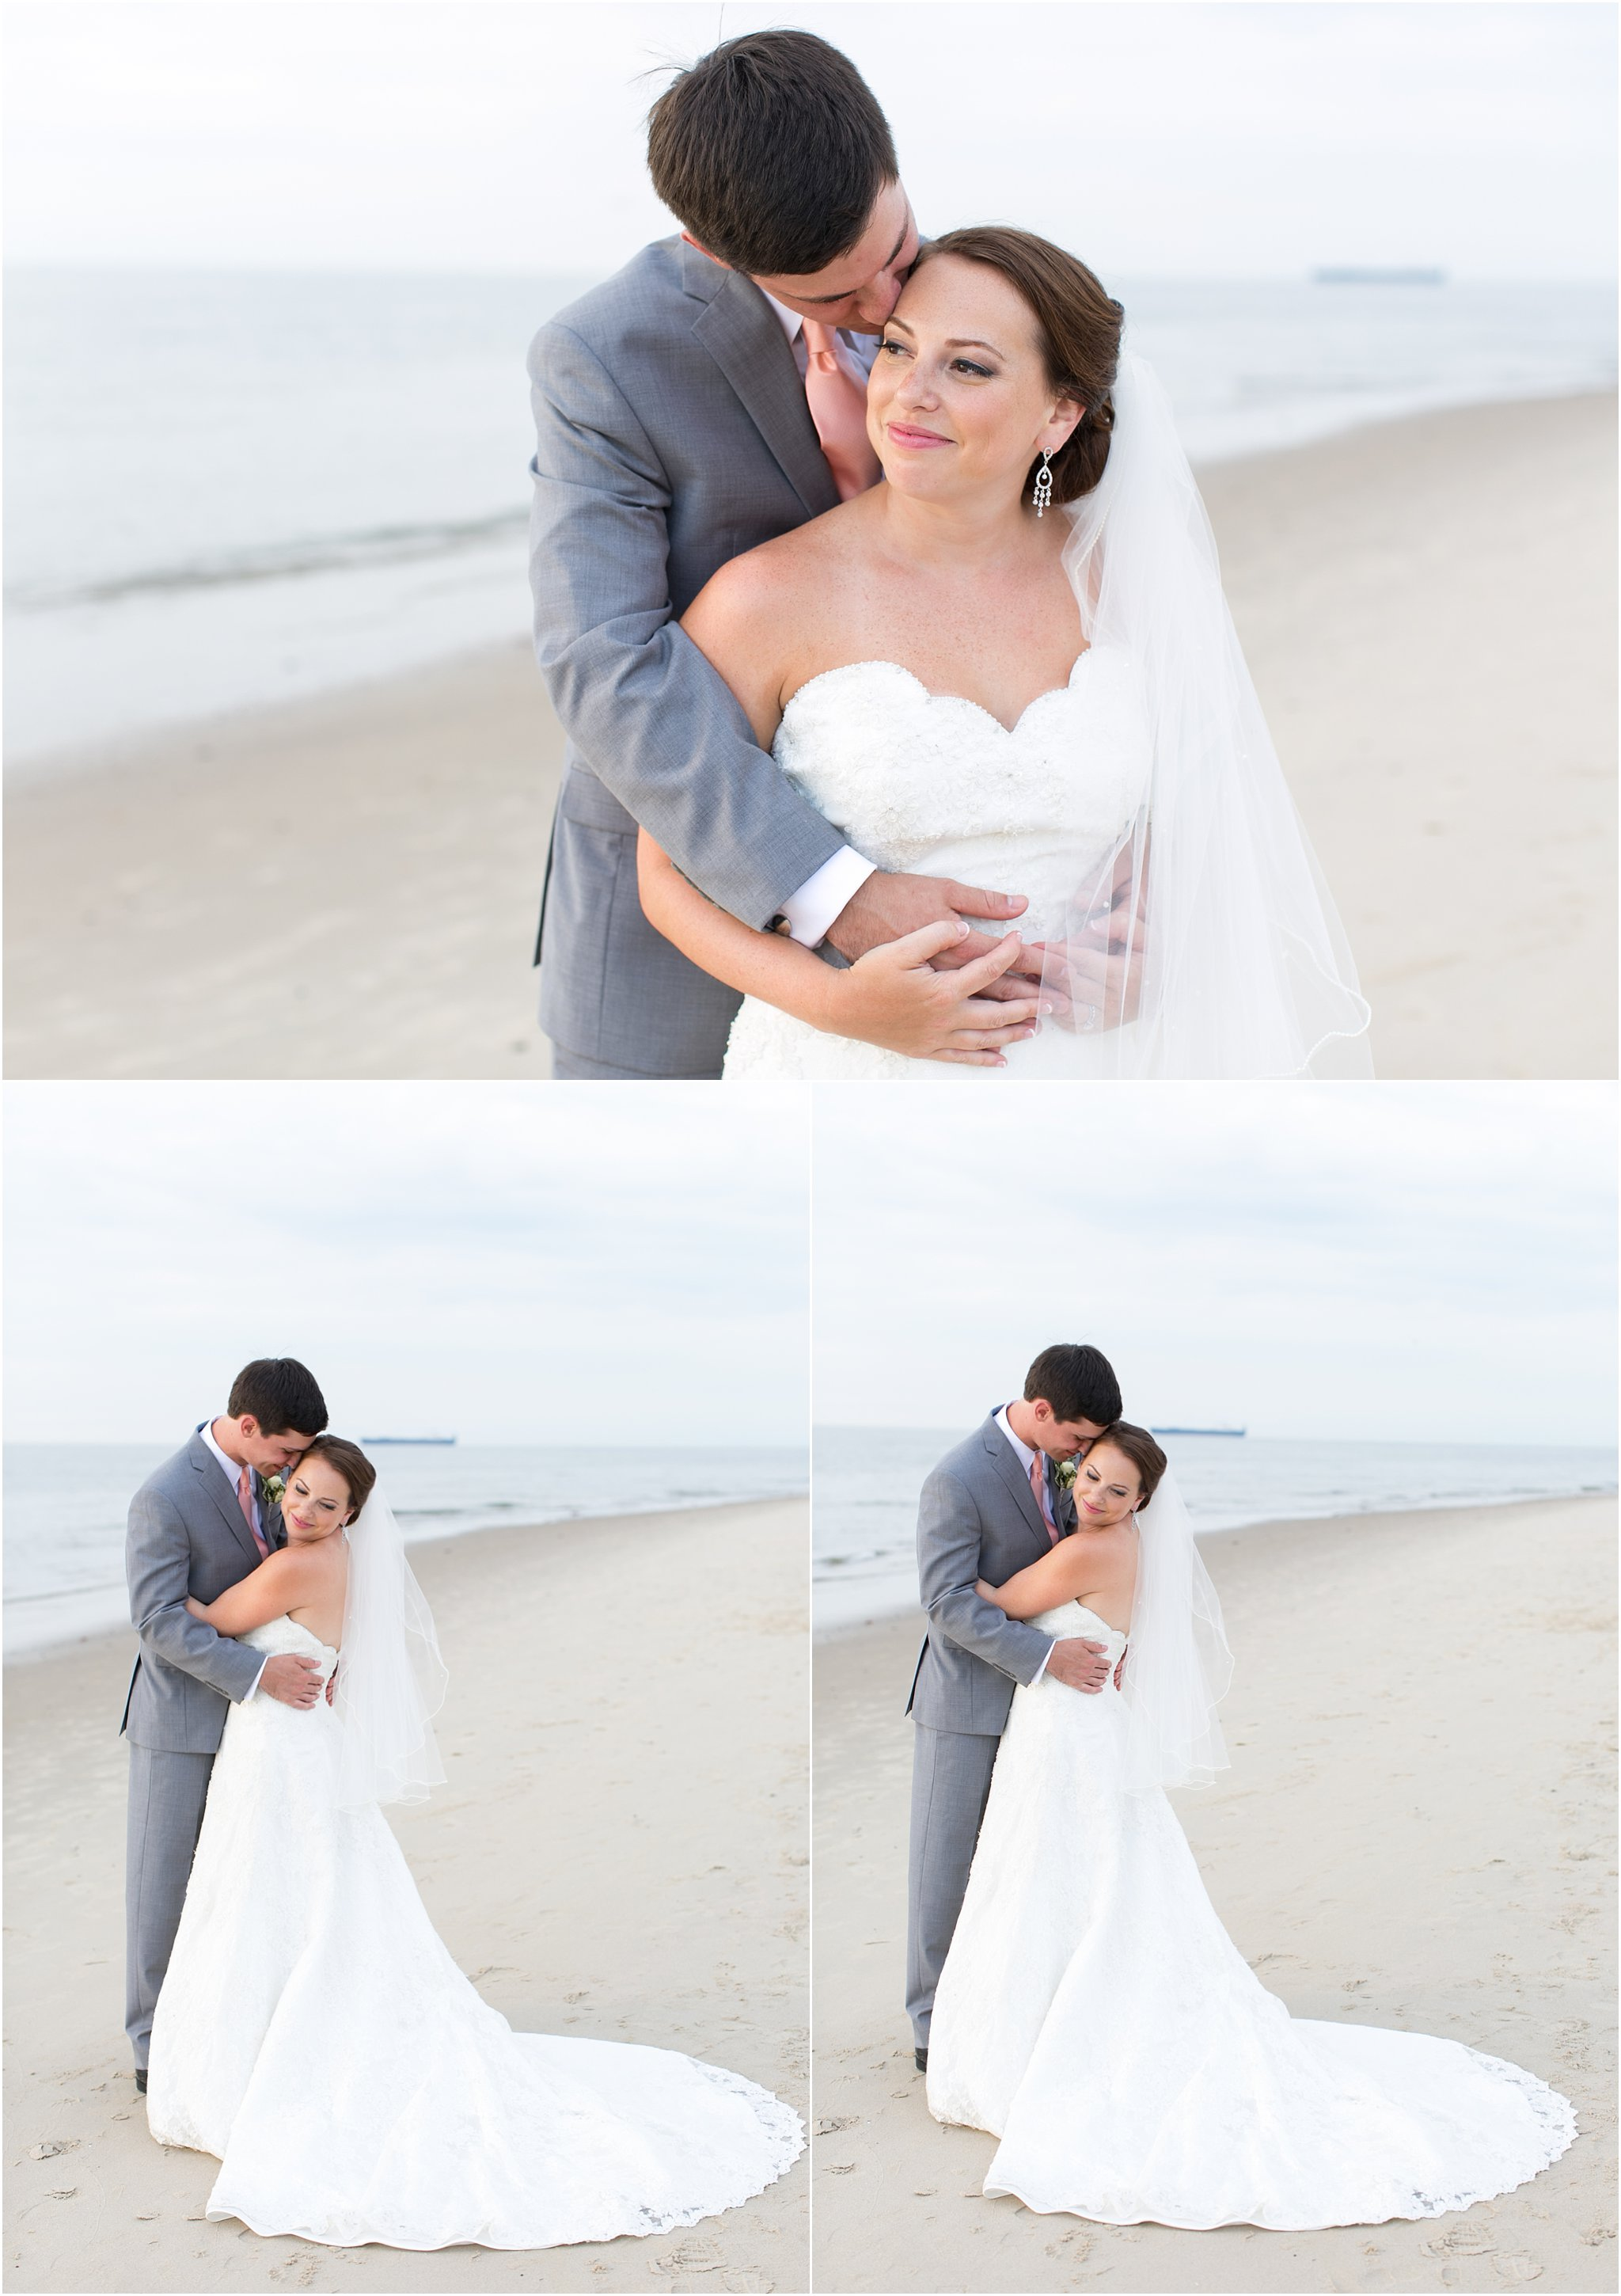 jessica_ryan_photography_wedding_photography_virginiabeach_virginia_candid_authentic_wedding_portraits_marina_shores_yacht_club_chesapeake_bay_1884